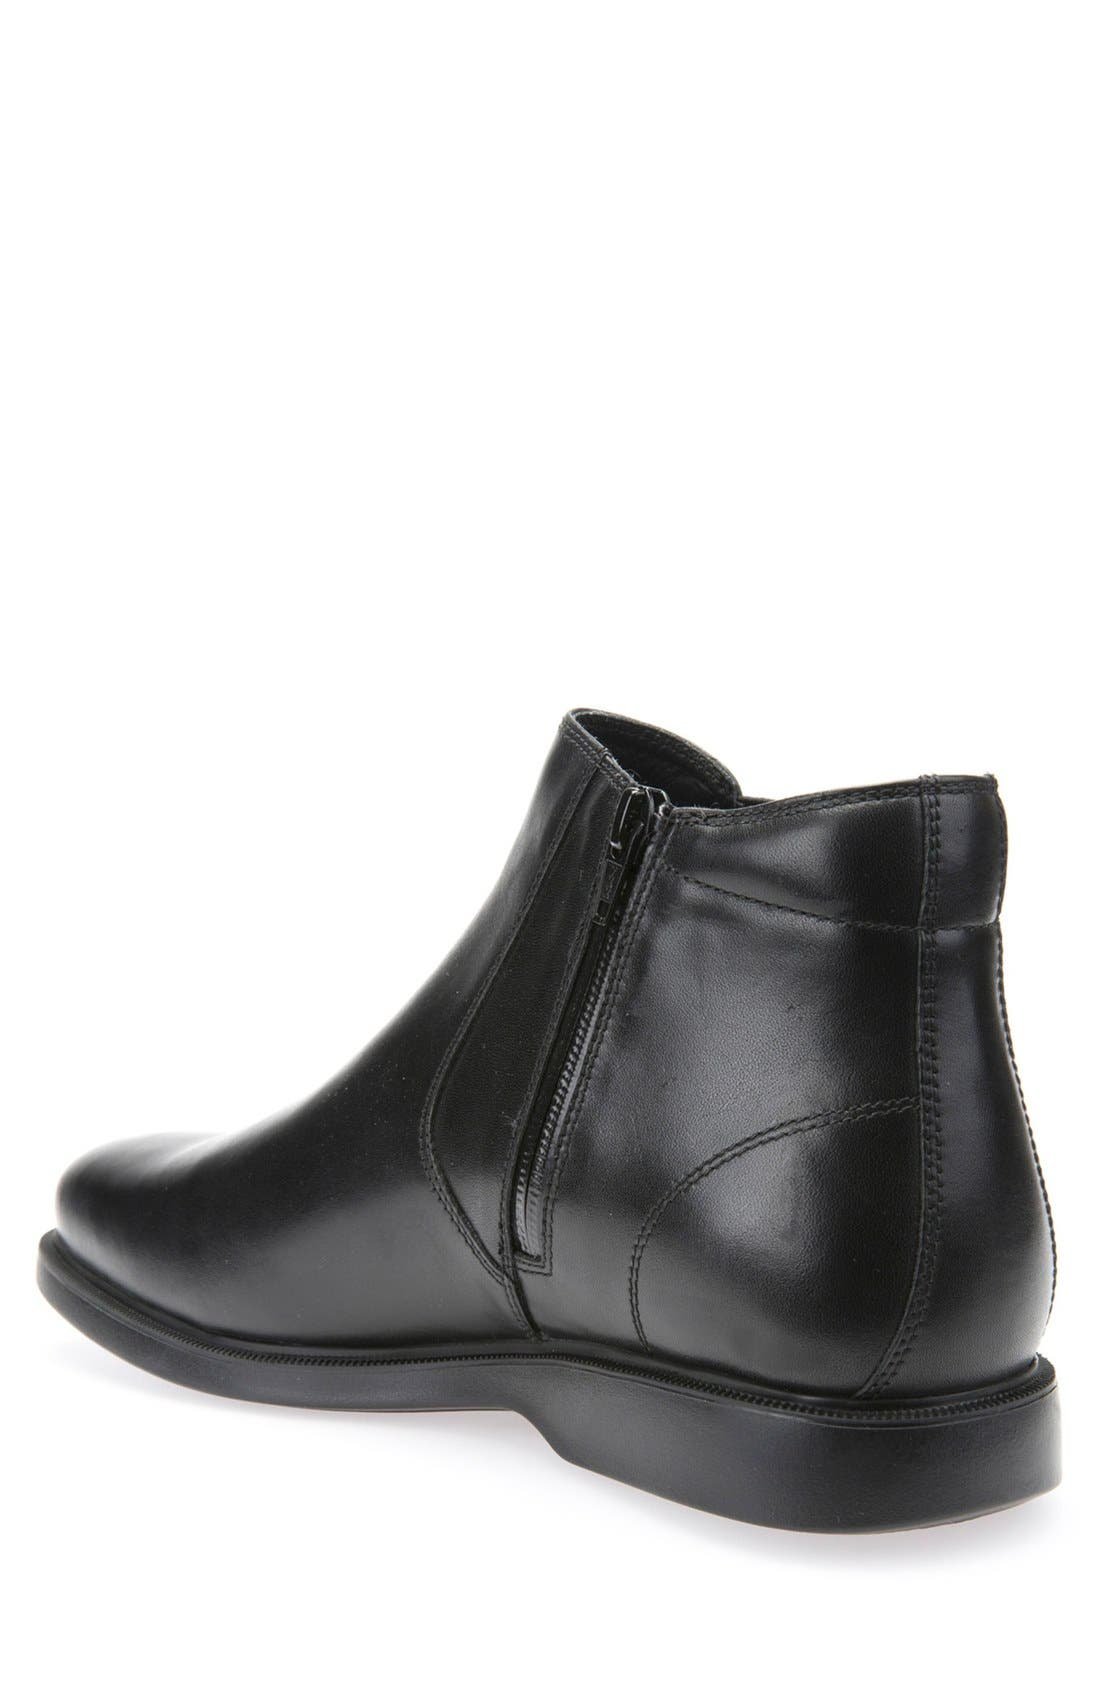 Brayden ABX Waterproof Mid Chelsea Boot,                             Alternate thumbnail 2, color,                             Black Leather